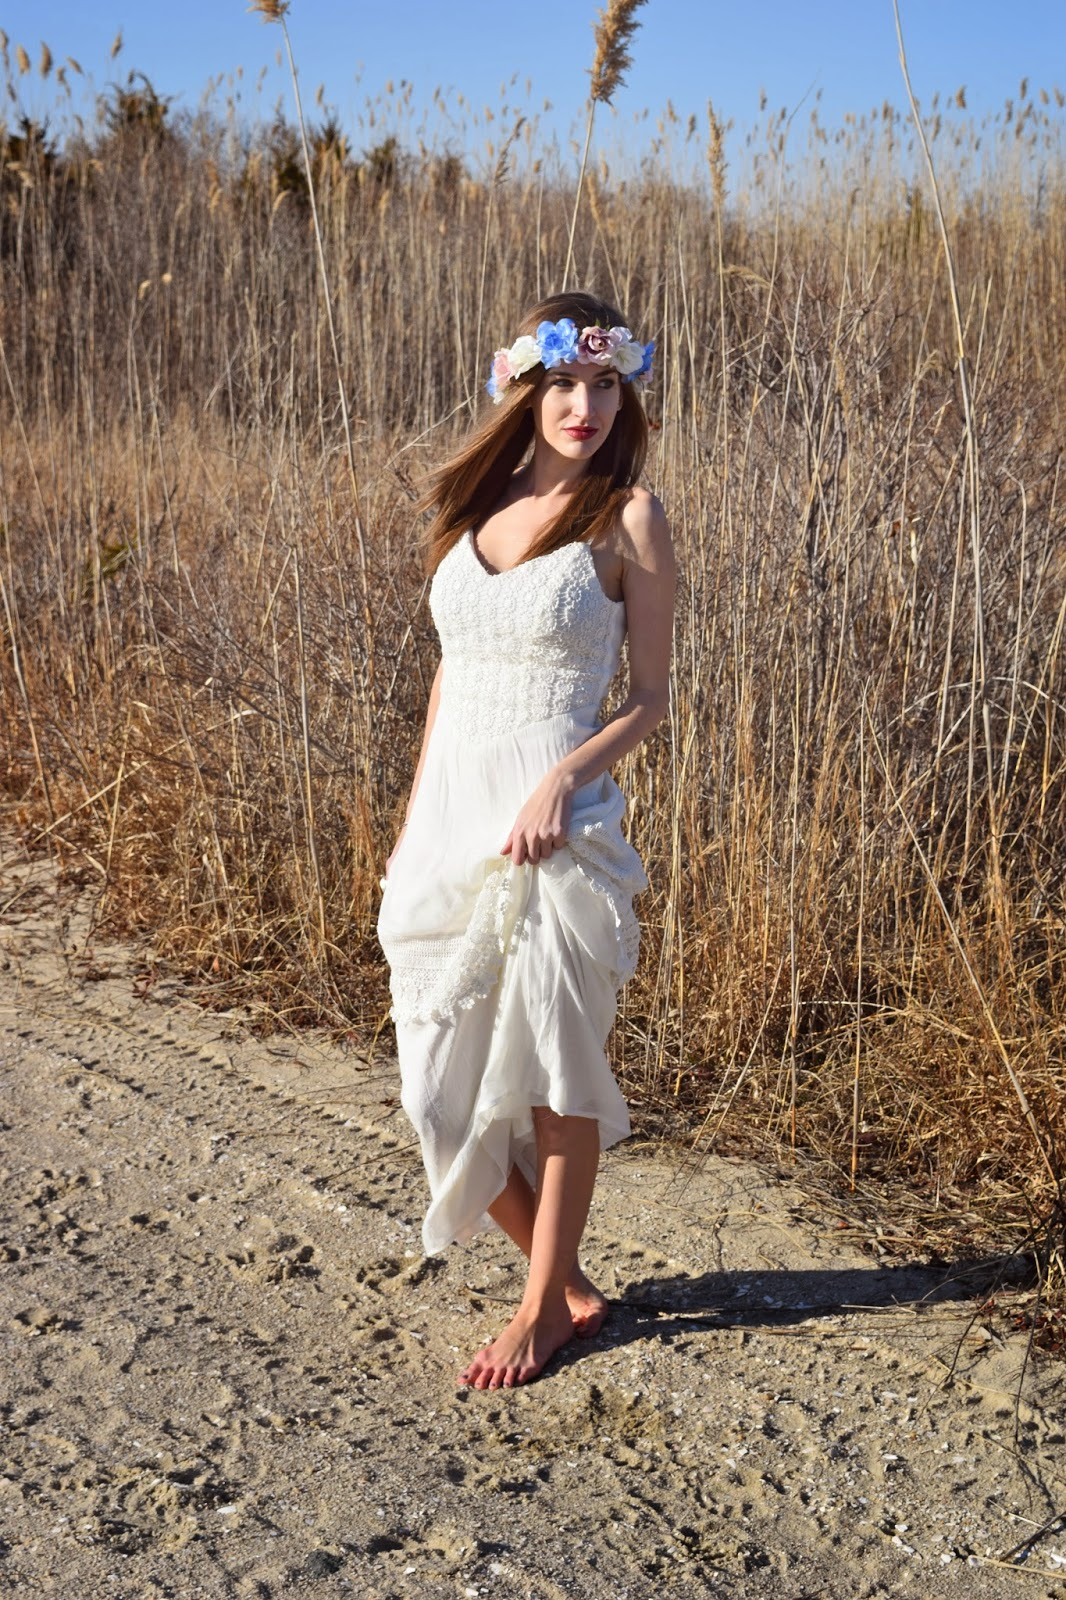 wearing Trixxi Girl Ivory Crochet Knit Maxi Dress, Coachella Inspired Look 2015, Nordstrom Flower Crown